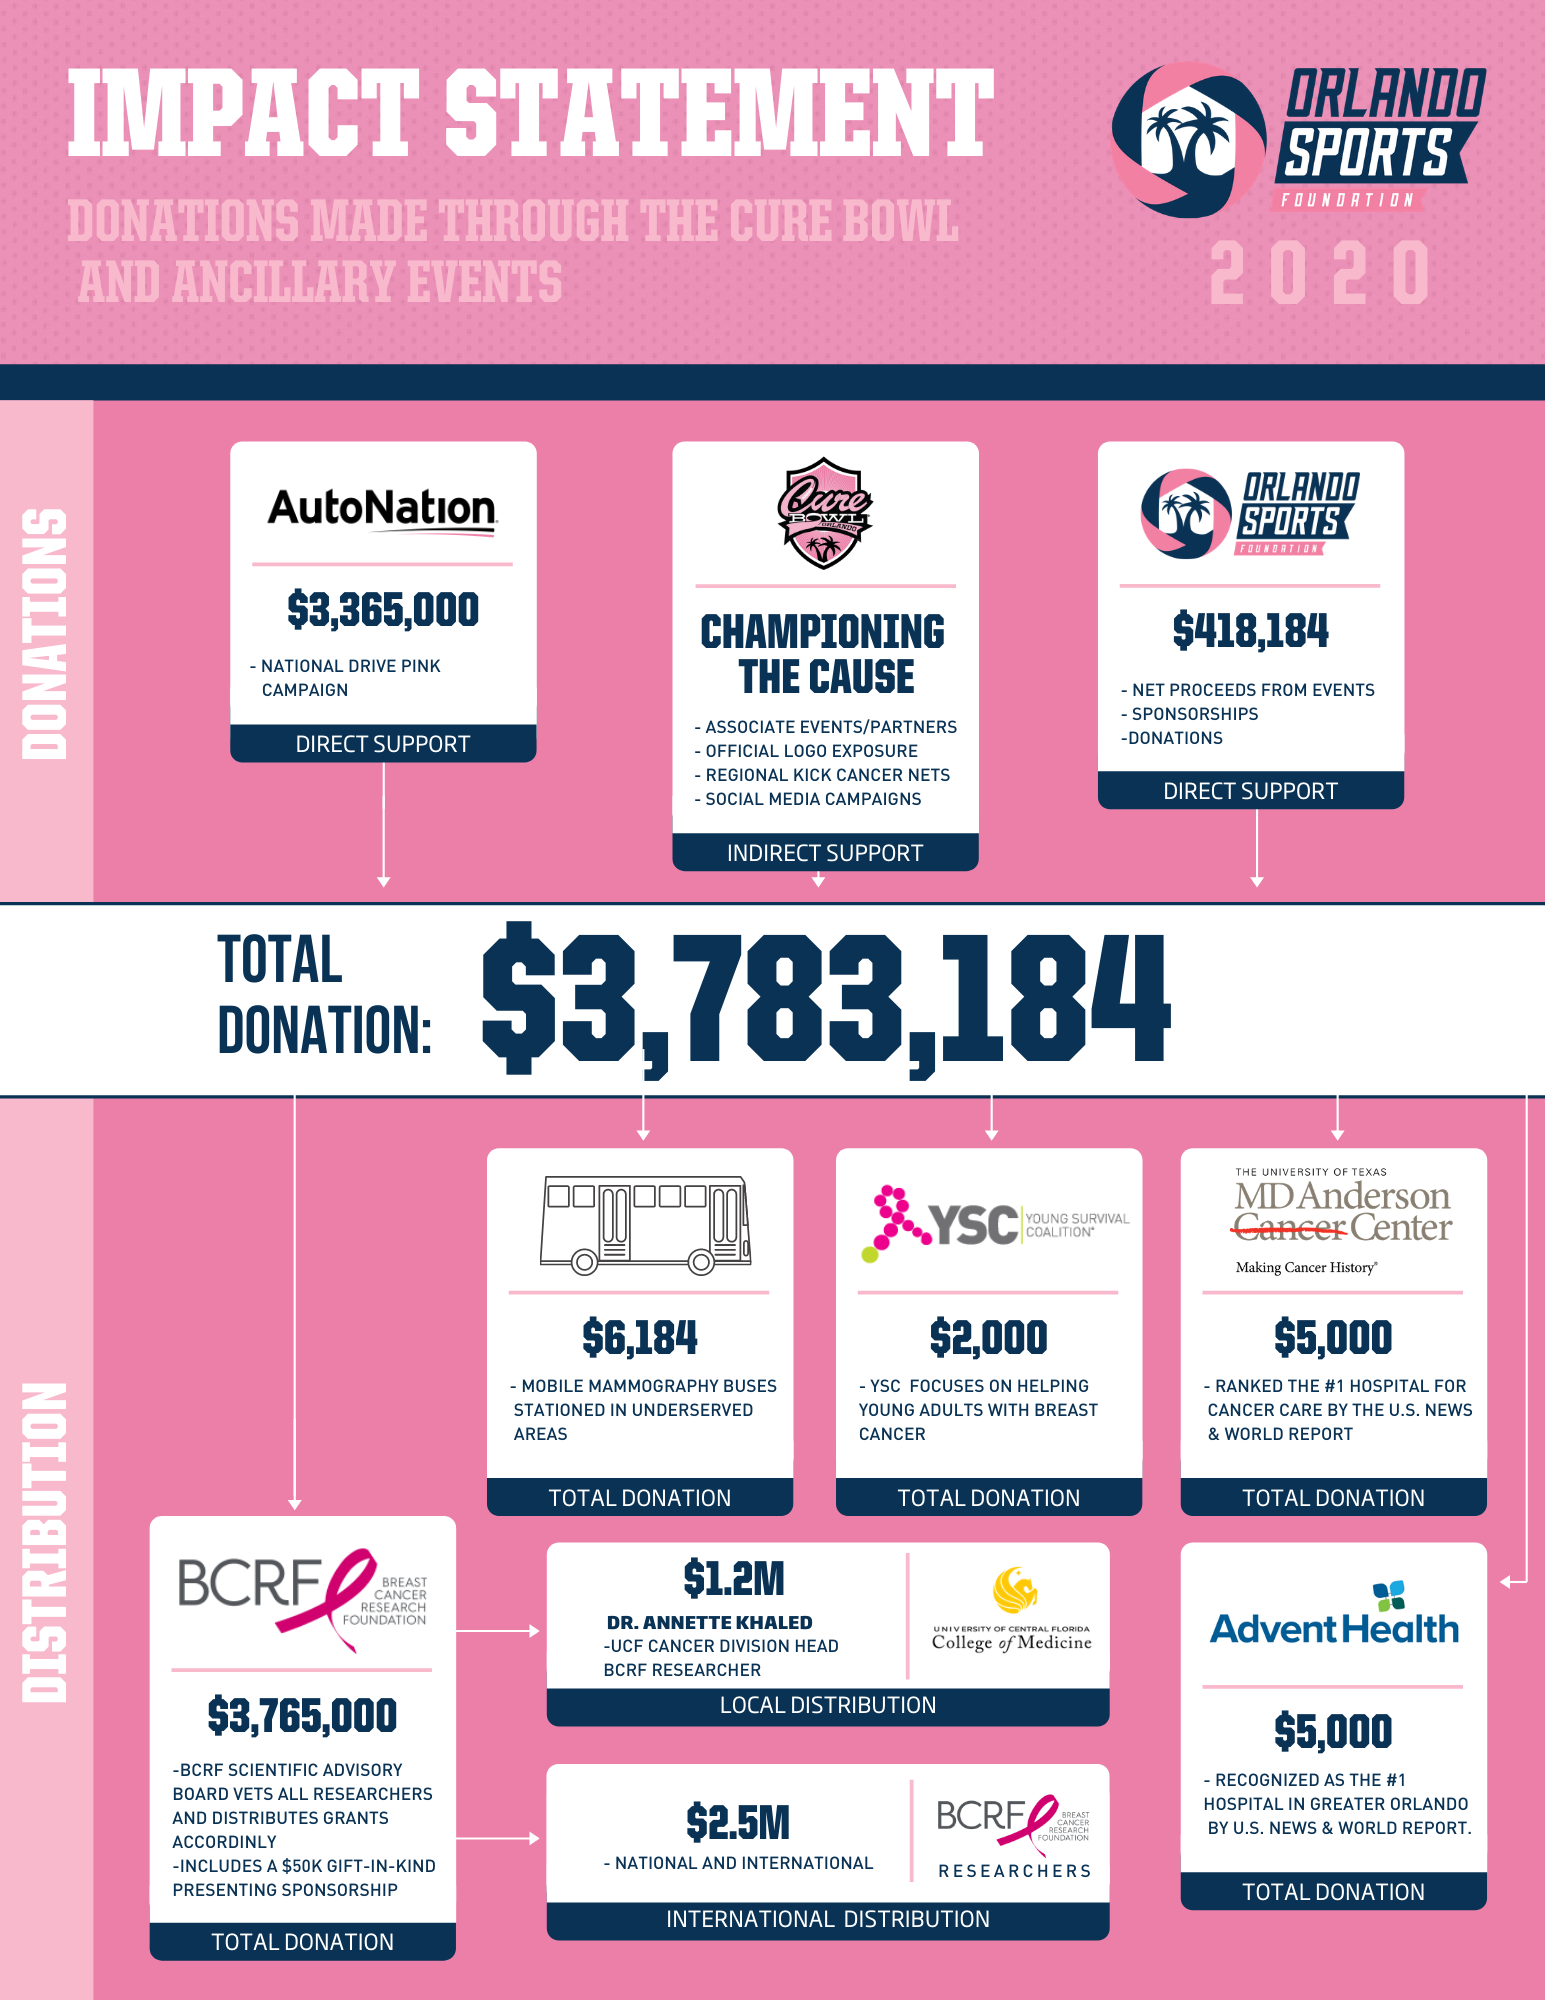 A graphic showing how the Orlando Sports Foundation has donated $3,783,184 since 2015. The biggest donation is to the Breast Cancer Research Foundation, with over $3,000,000